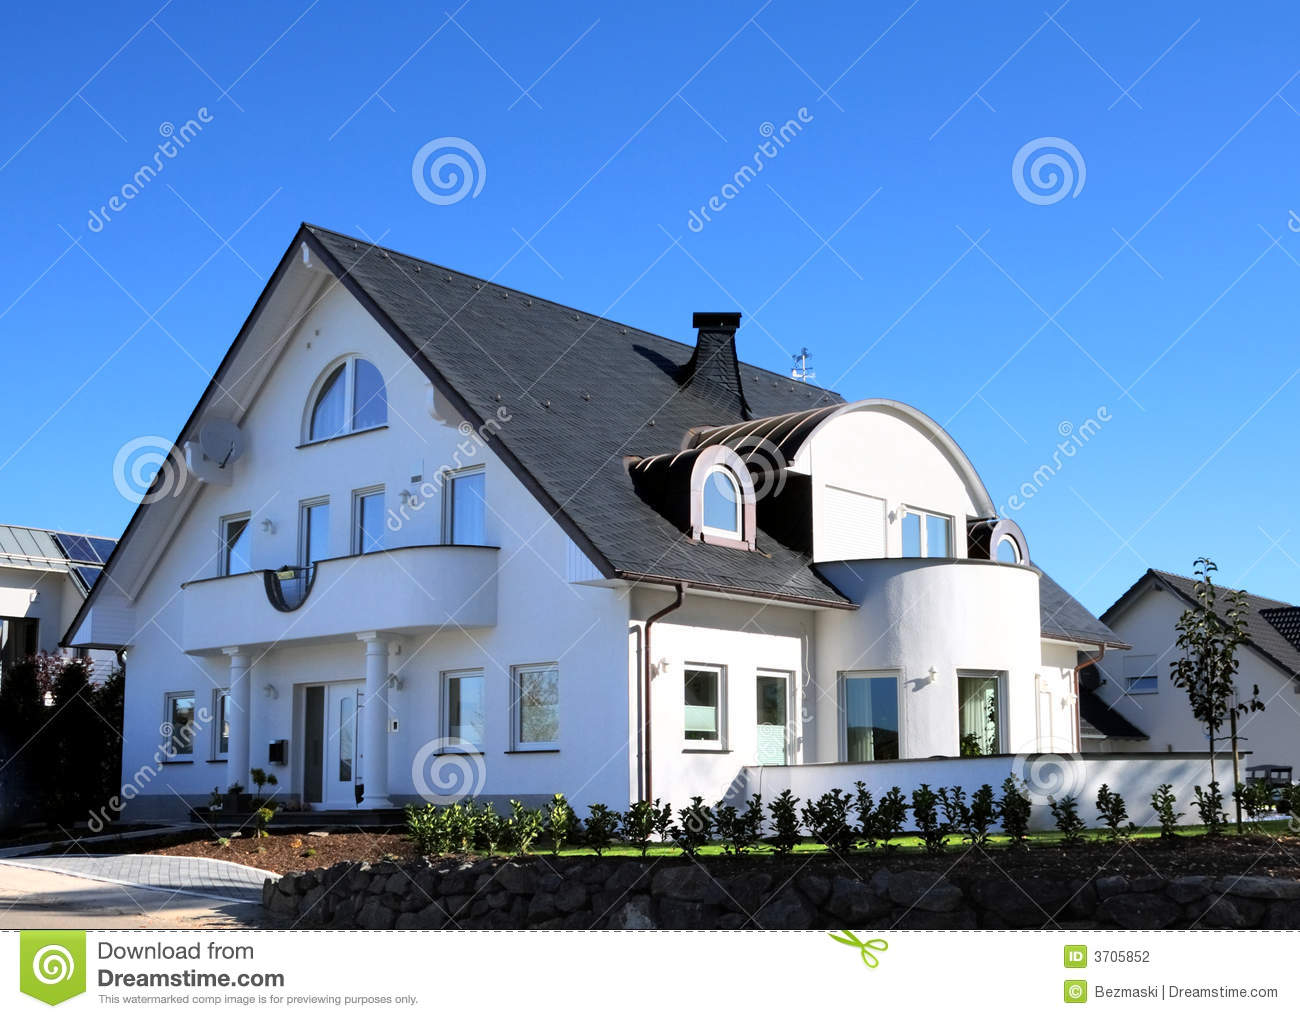 A house and the sky stock photo 67847244 for Blue modern house